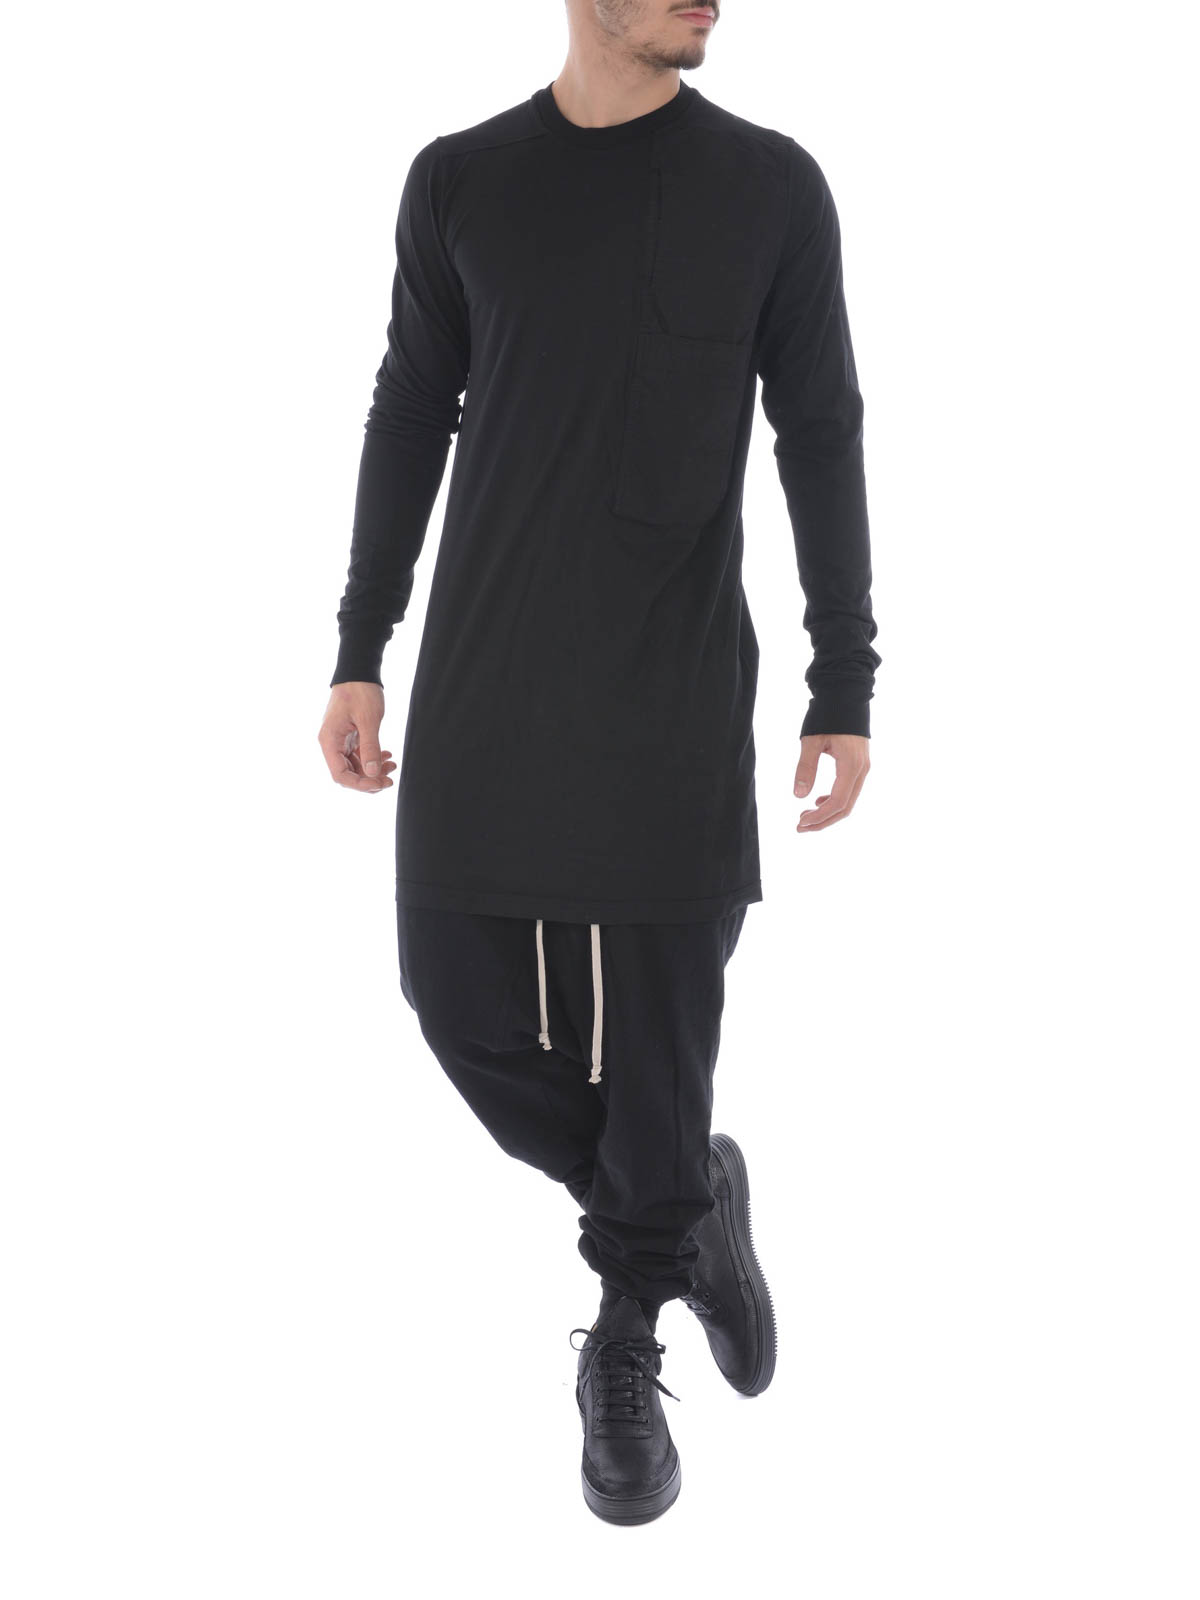 OVERSIZE COTTON SWEATER WITH POCKET by Rick Owens - Sweatshirts ...